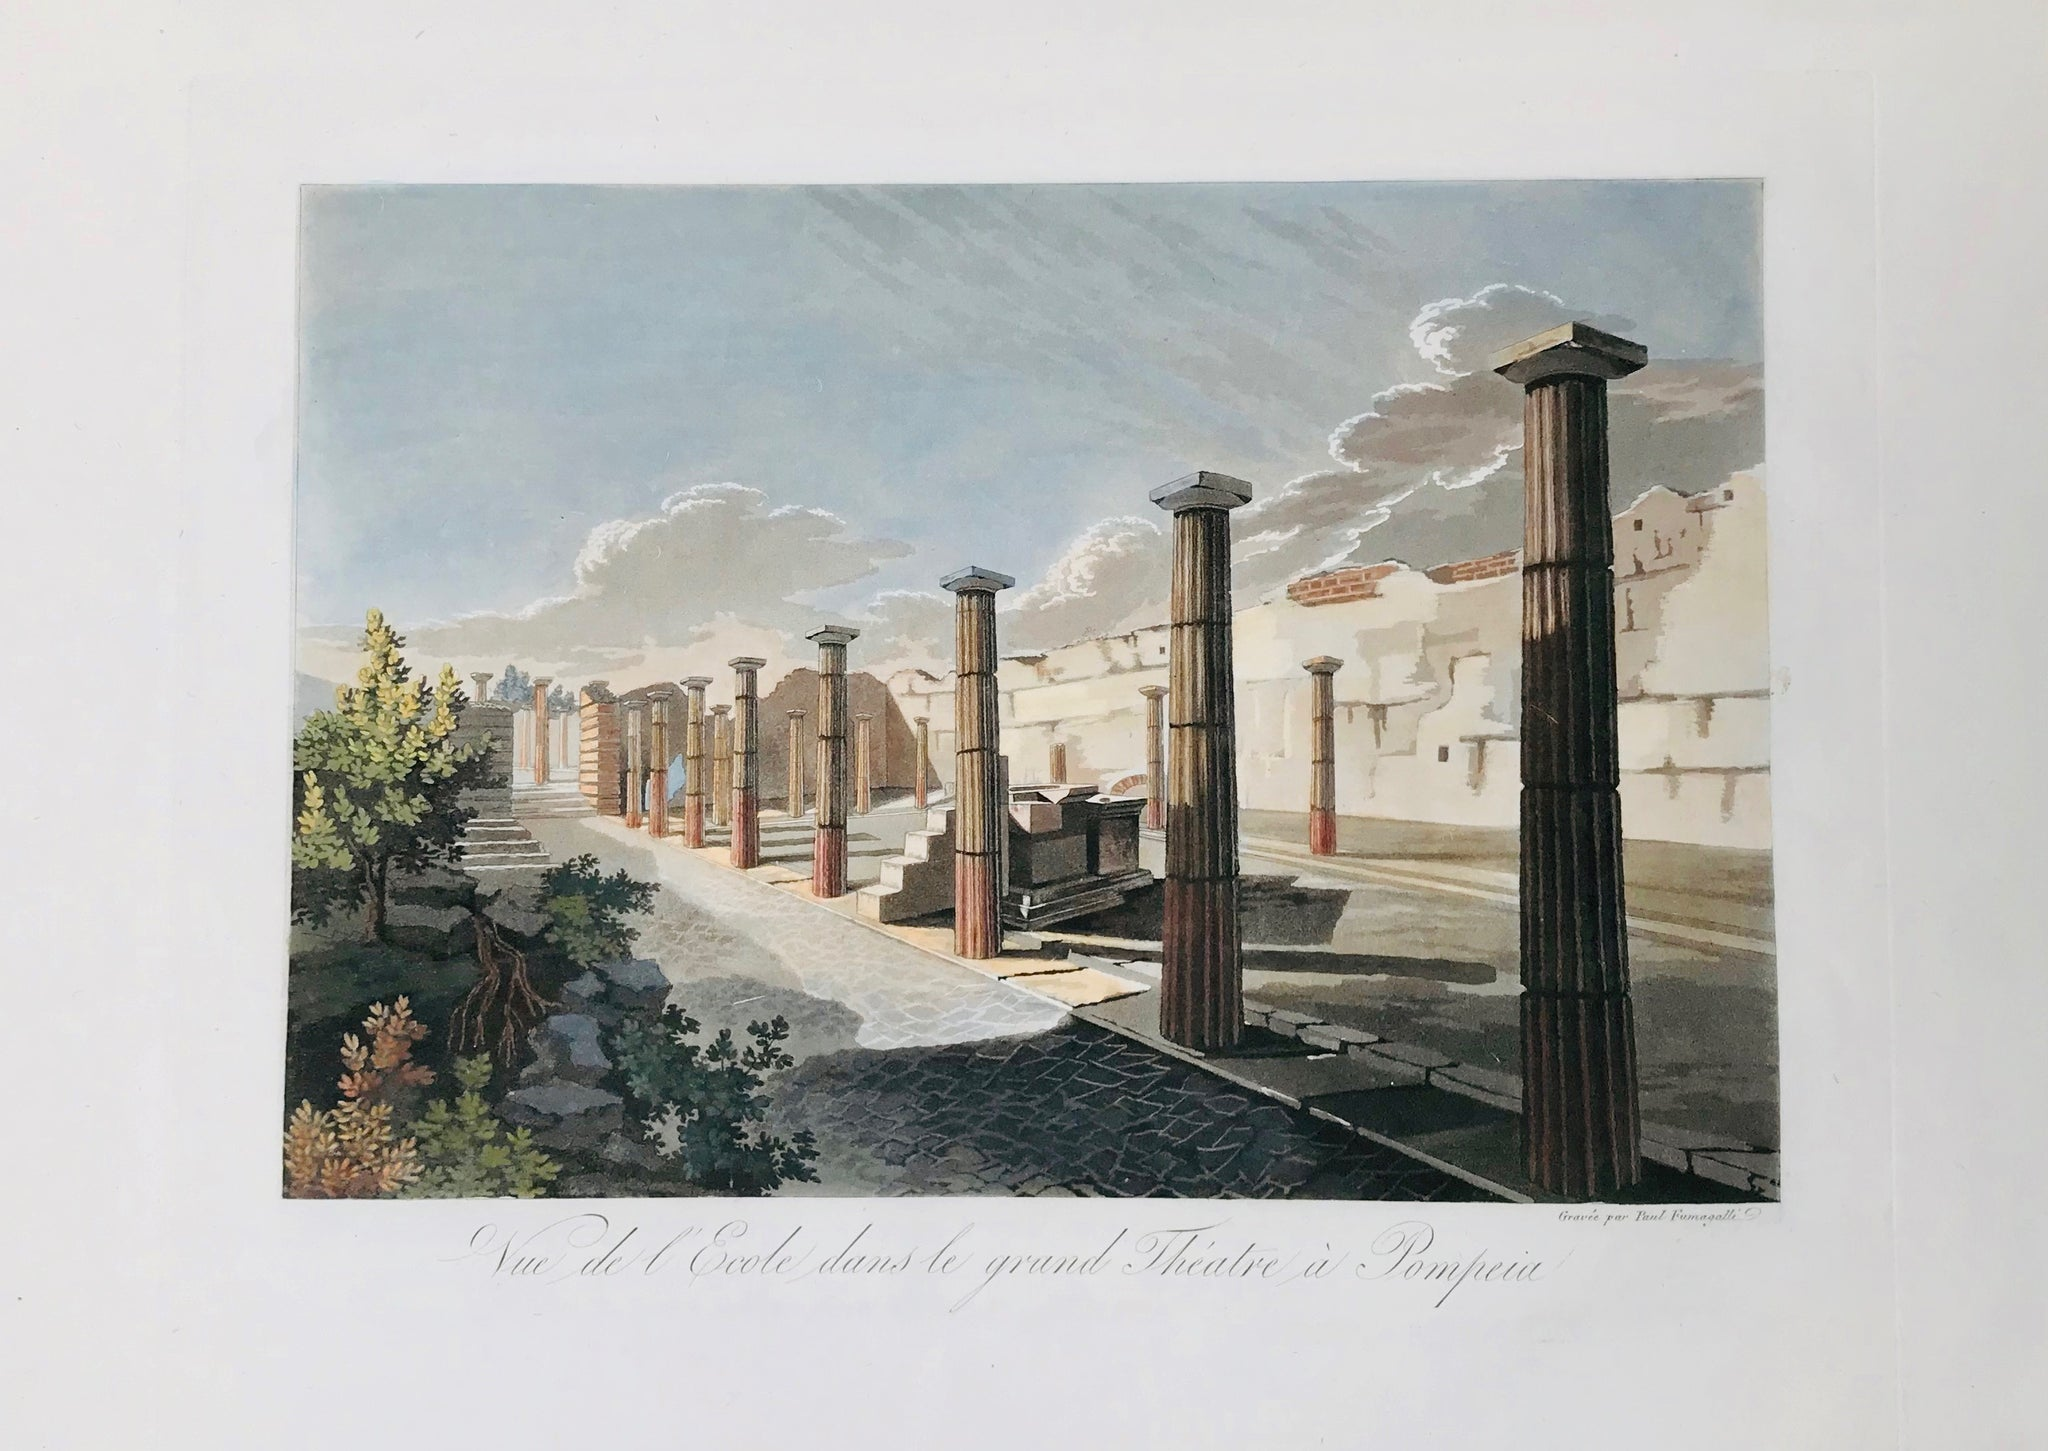 "Vue de l'Ecole dans le grand Théatre à Pompeia  Some foxing in lower margin.  19.3 x 28 cm ( 7.6 x 11 "")  Aquatints engraved by Paul Fumagalli from 1821-1825  These prints with their velvety aquatint appearance were made to delight our hearts. They portrait, like no others, the elegance of architecture and the luxurious lifestyle of the citizens of the ancient city - until the nearby Vesuvius put an end to it all in a devestating rain of volcanic ashes."